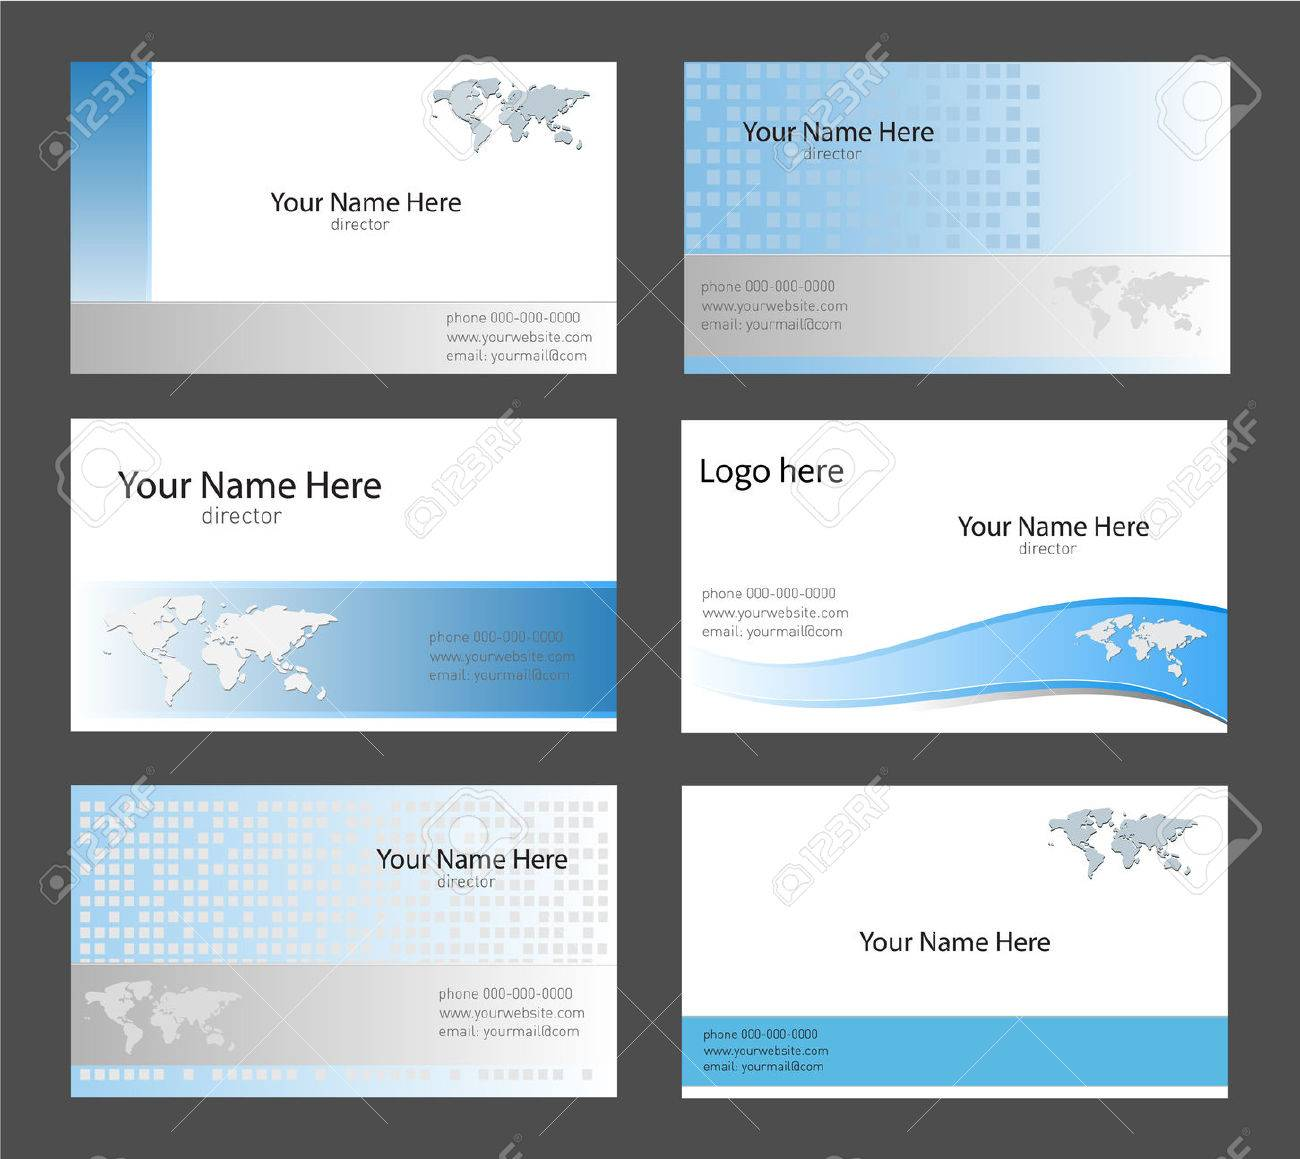 Six Corporate Business Card Templates White, Blue And Grey With ...